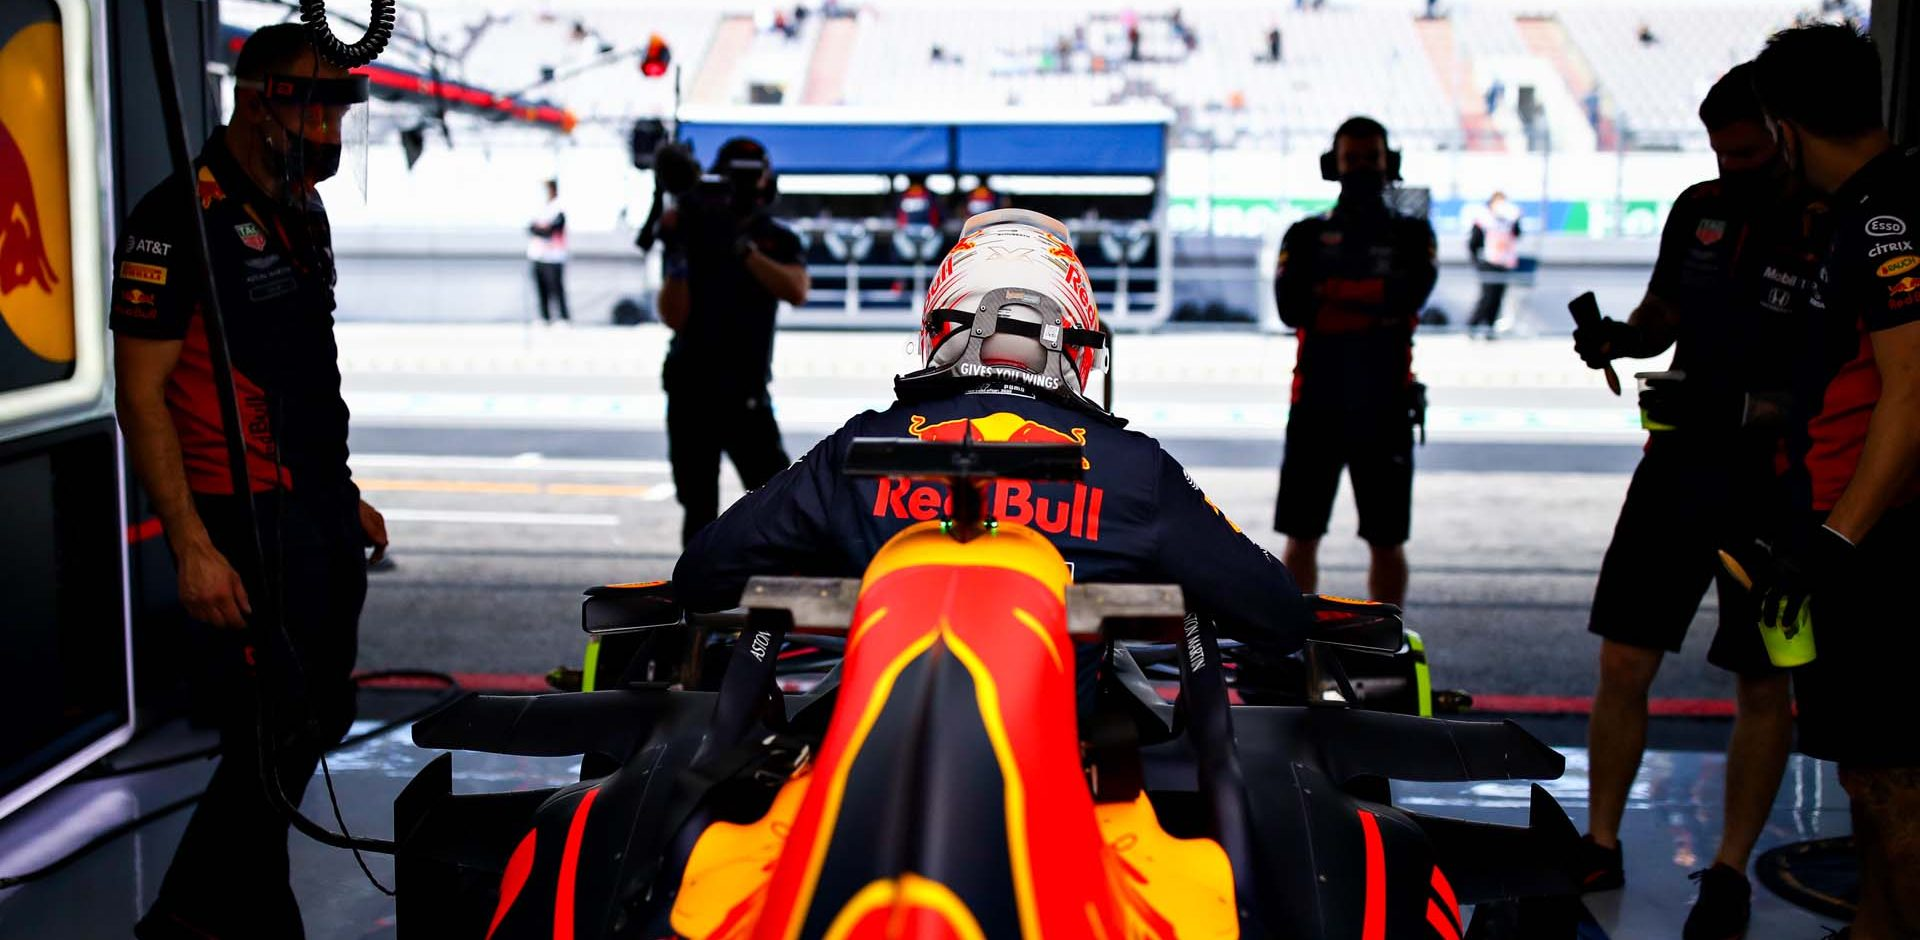 PORTIMAO, PORTUGAL - OCTOBER 23: Max Verstappen of Netherlands and Red Bull Racing prepares to drive in the garage during practice ahead of the F1 Grand Prix of Portugal at Autodromo Internacional do Algarve on October 23, 2020 in Portimao, Portugal. (Photo by Mark Thompson/Getty Images)